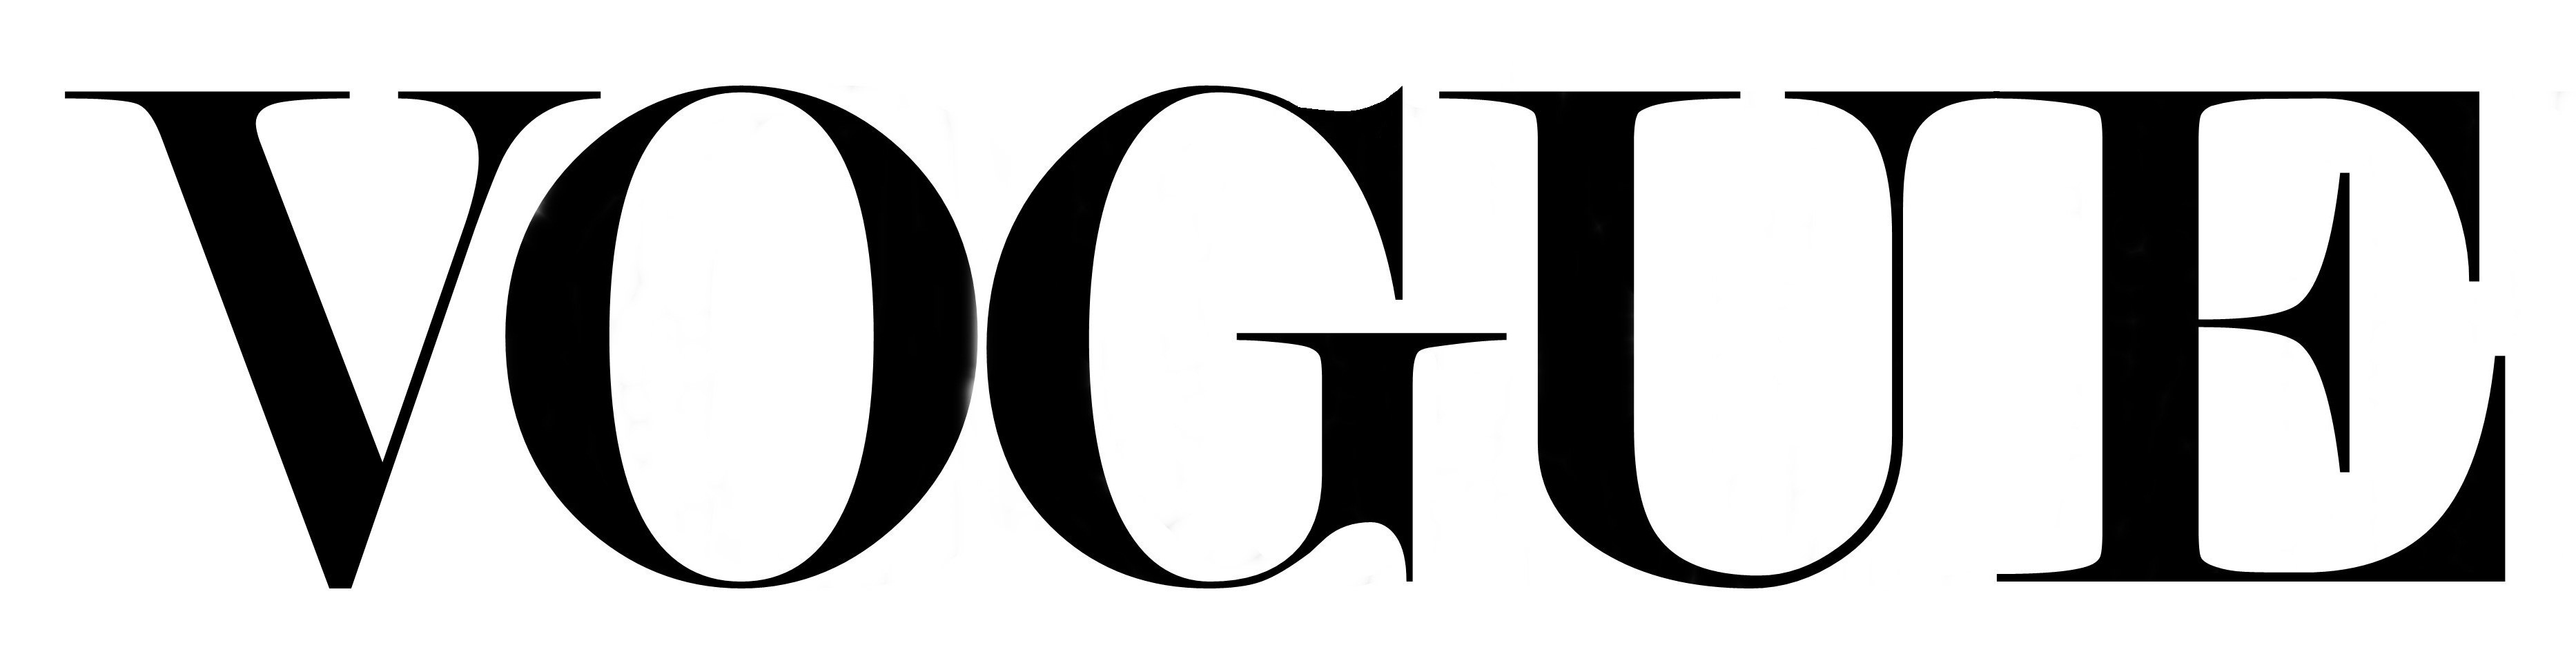 vogue-logo-wallpaper